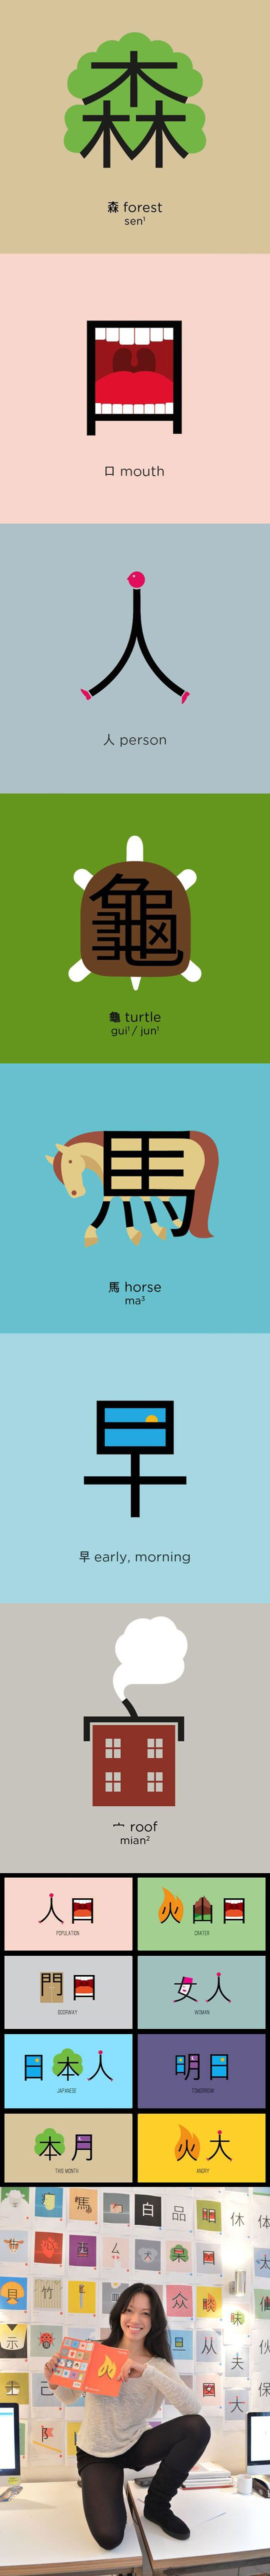 cool-playful-illustrations-Chinese-learning-symbols